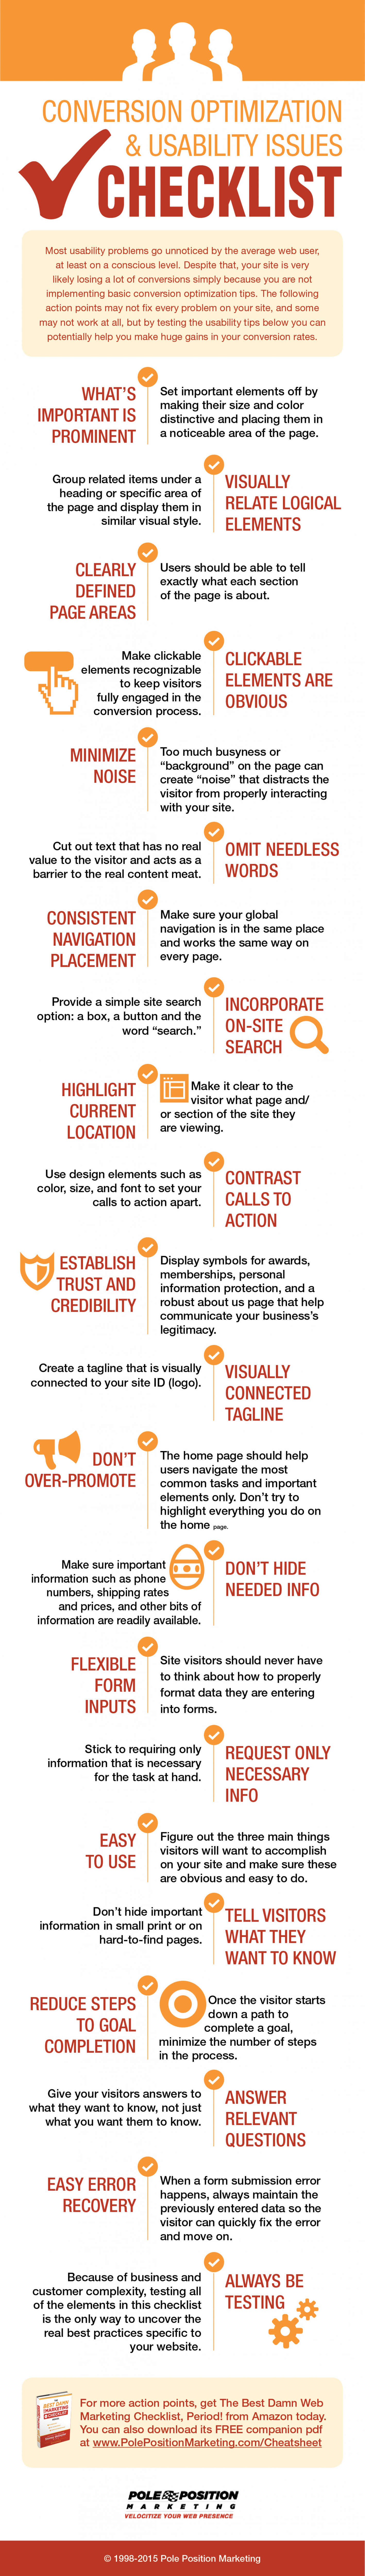 Website Conversion and Usability Checklist Infographic